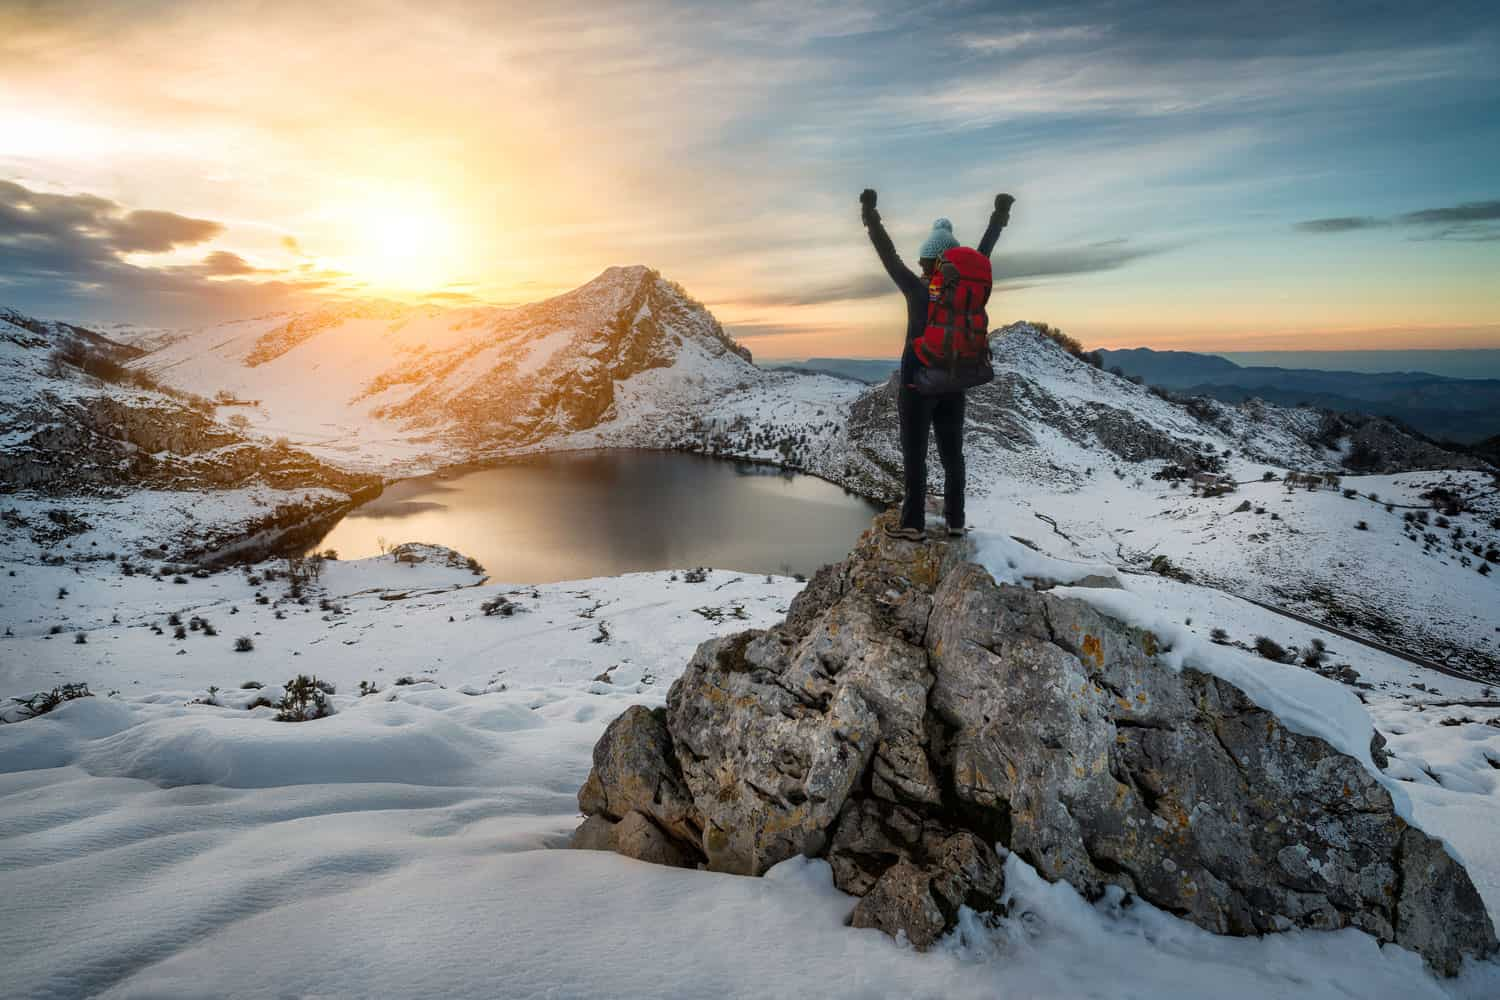 A man raising his arms after reaching the summit of a snow mountain